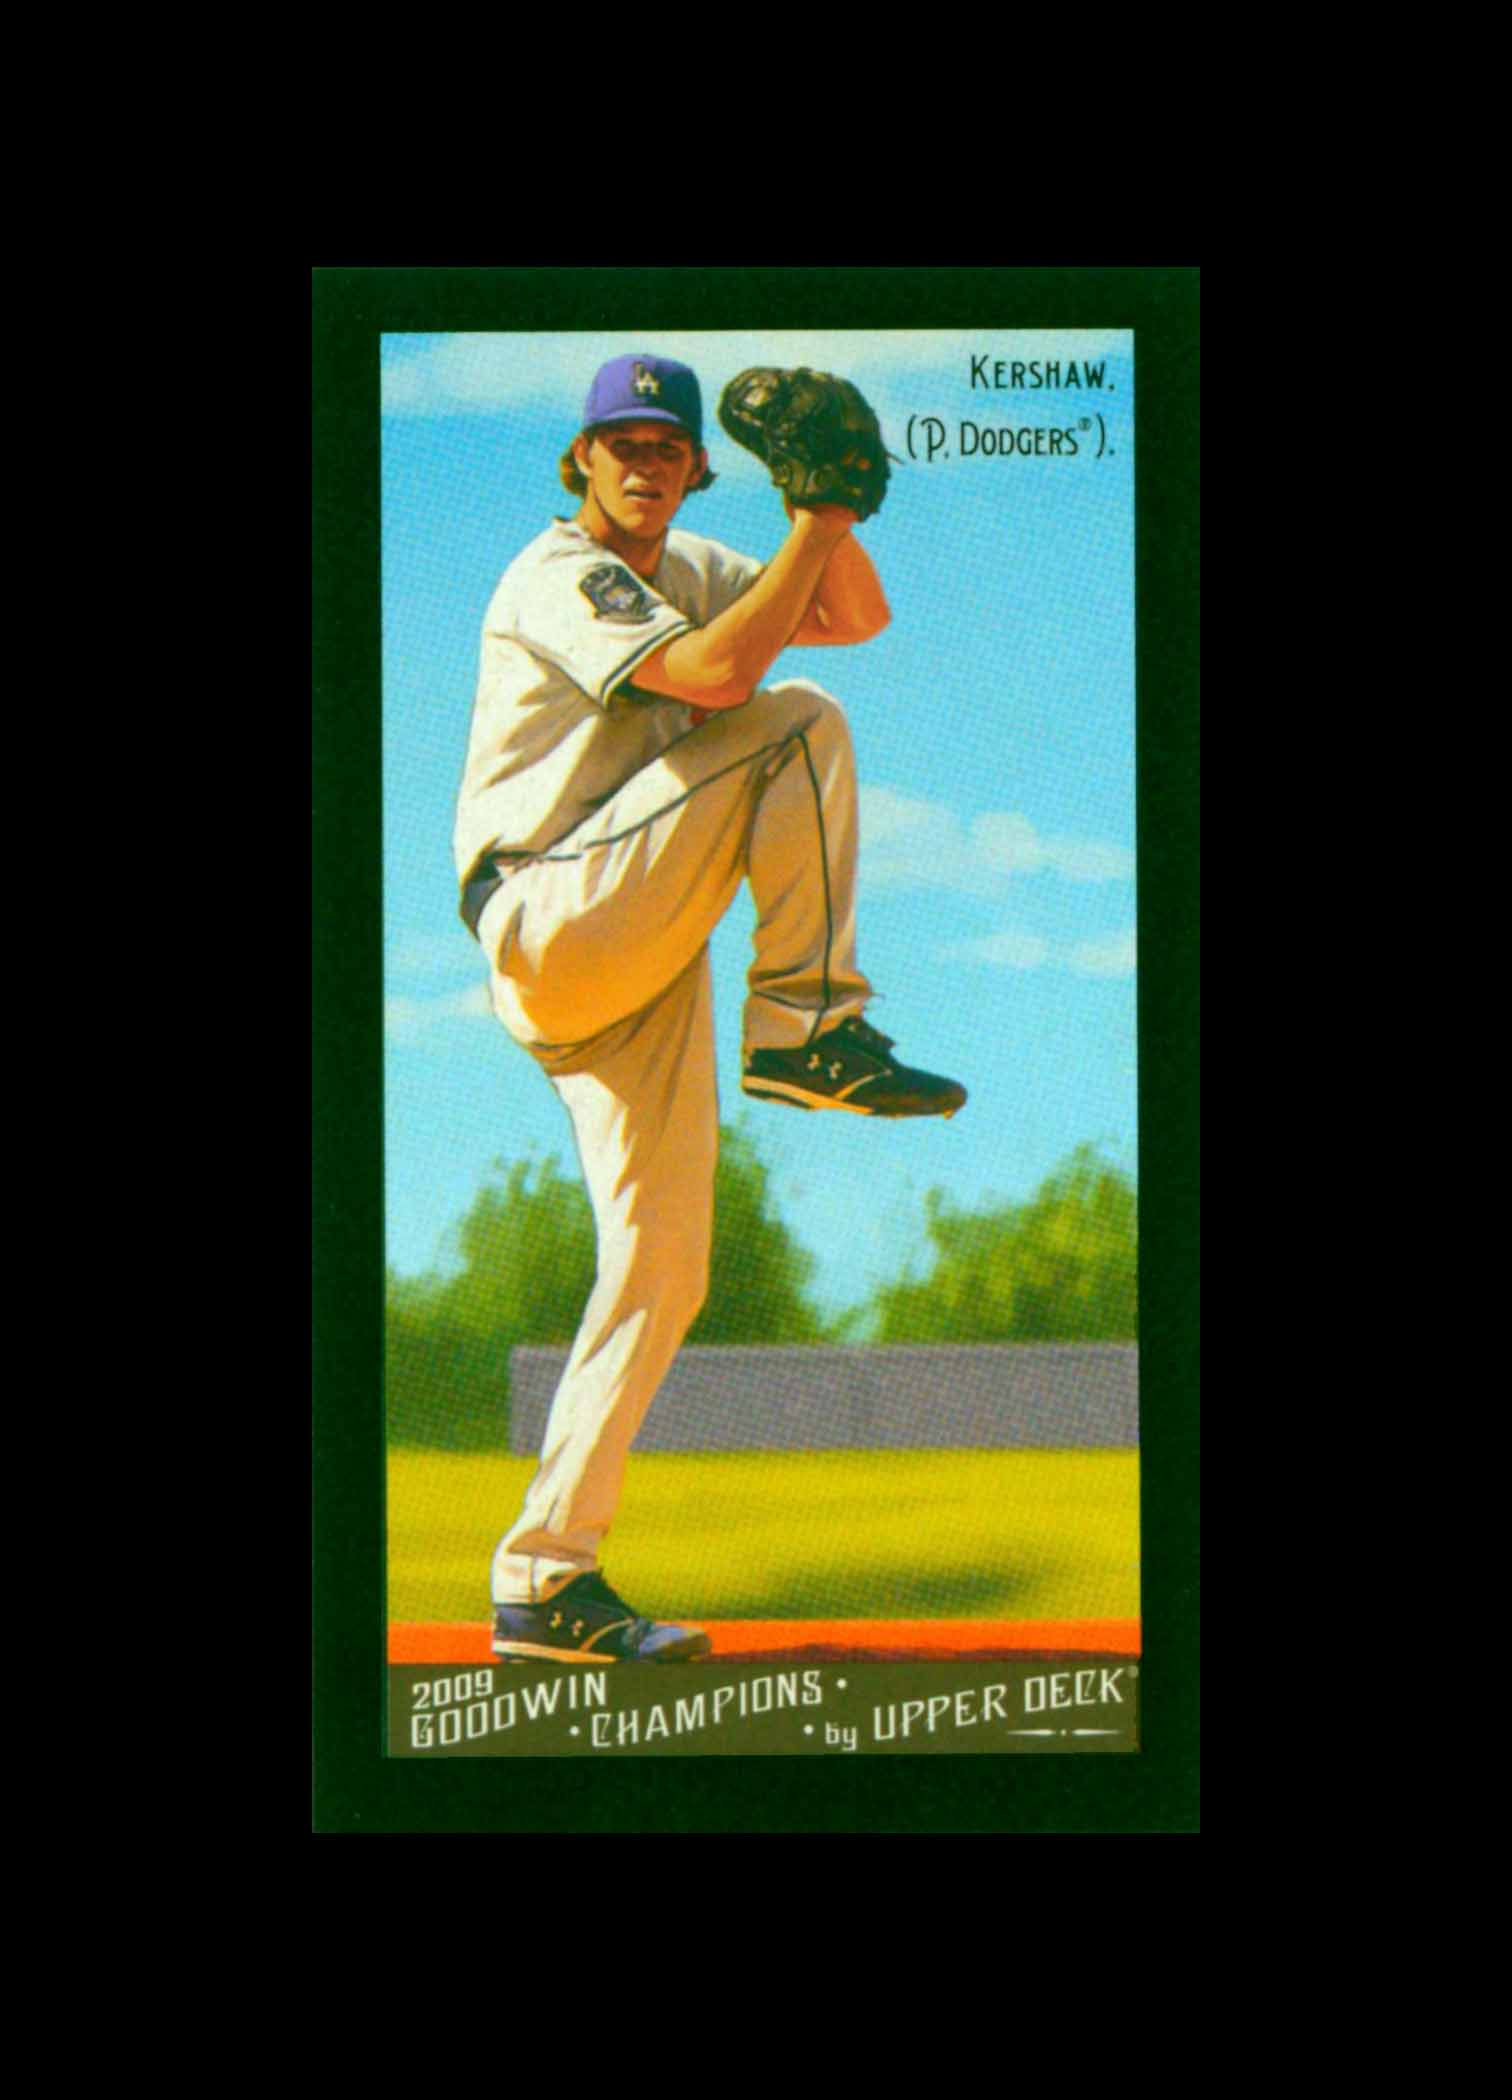 2011 Bowman Finest Futures